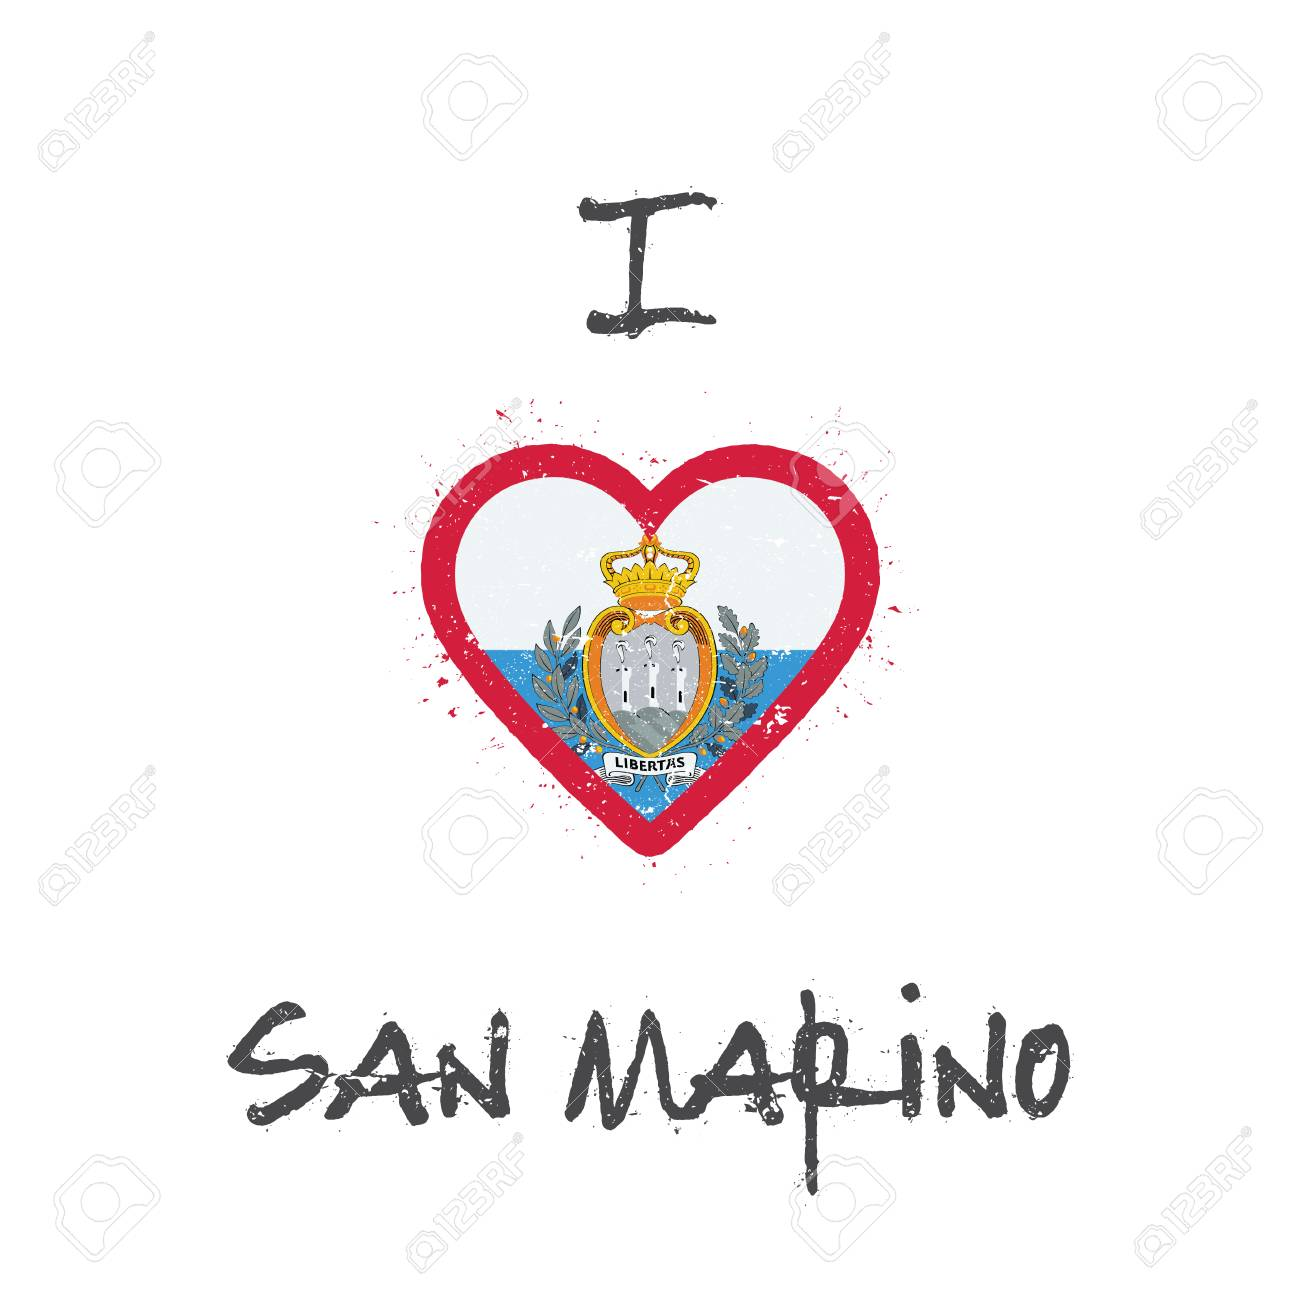 https://previews.123rf.com/images/gagarych/gagarych1801/gagarych180101663/93989400-i-love-san-marino-t-shirt-design-san-marino-flag-in-the-shape-of-heart-on-white-background-grunge-ve.jpg